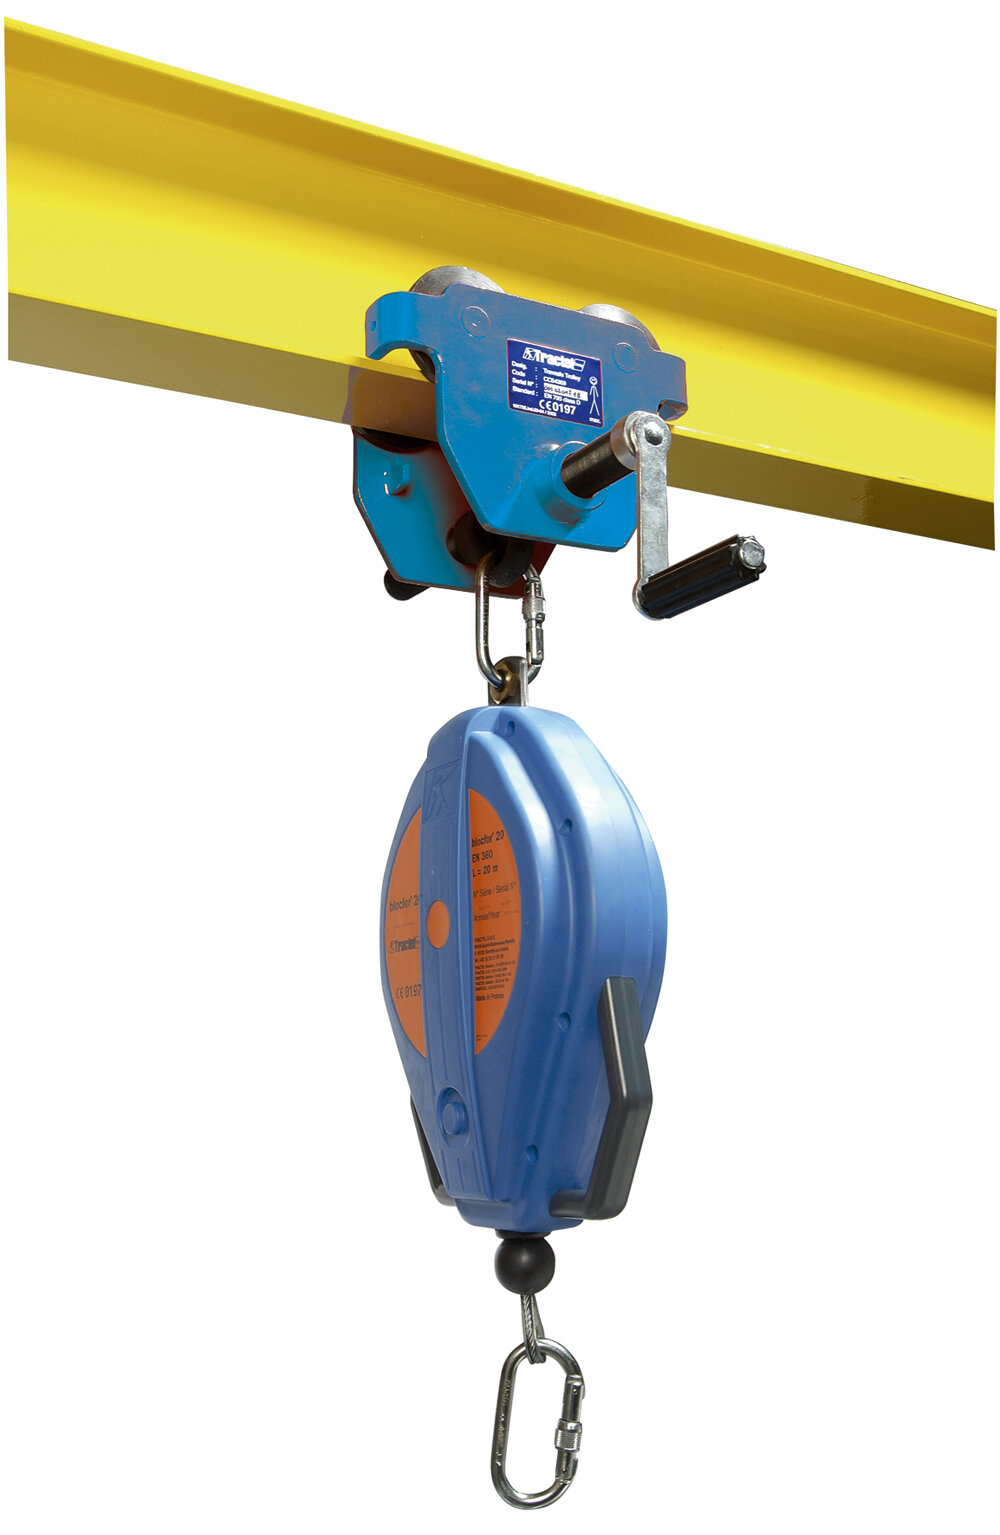 Tractel Roll Beam push trolley for man-riding applicatons